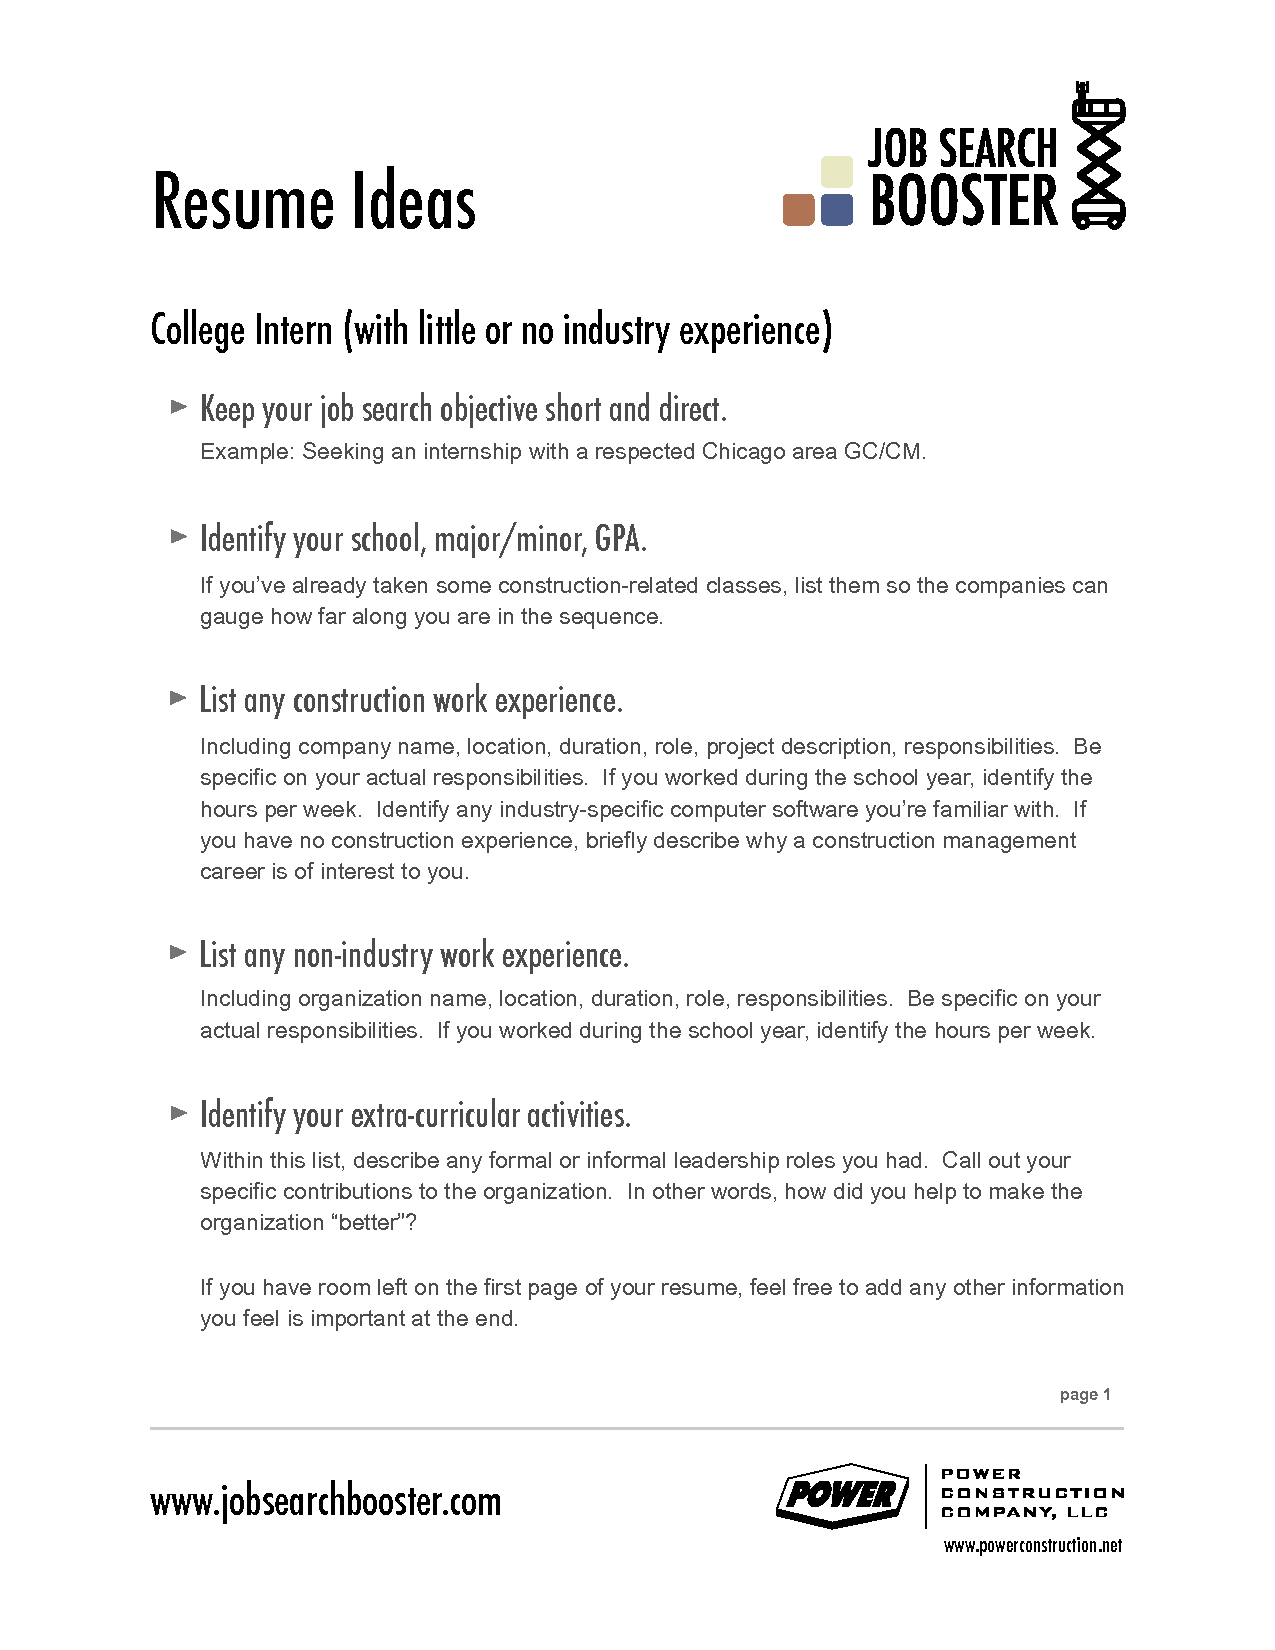 Resume Objective Examples. Job Resume Objective Examples | resumes ...